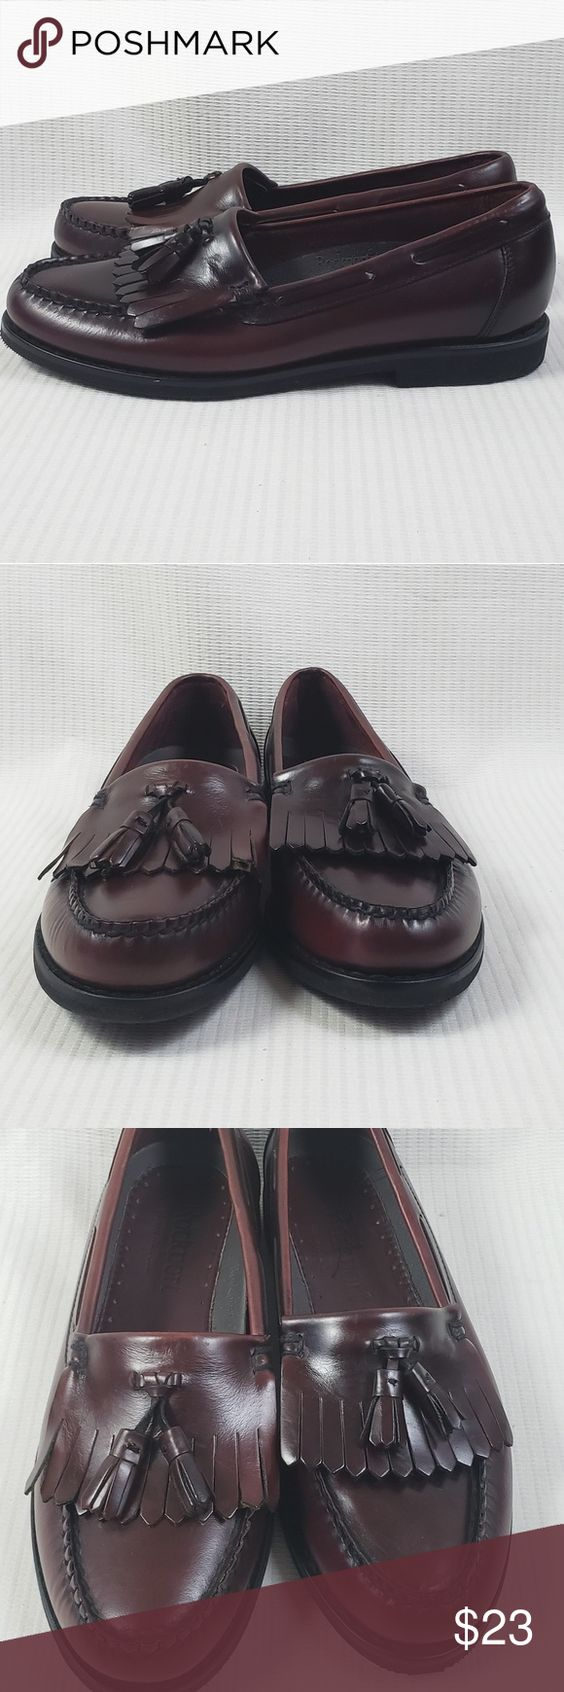 Rockport Leather Burgundy Tassel Loafers shoes 8M Preowned in wearable condition, gently used, have a few scuffs, leather upper lining...PLEASE SEE PICTURES AND SIZE... Rockport Shoes Loafers & Slip-Ons